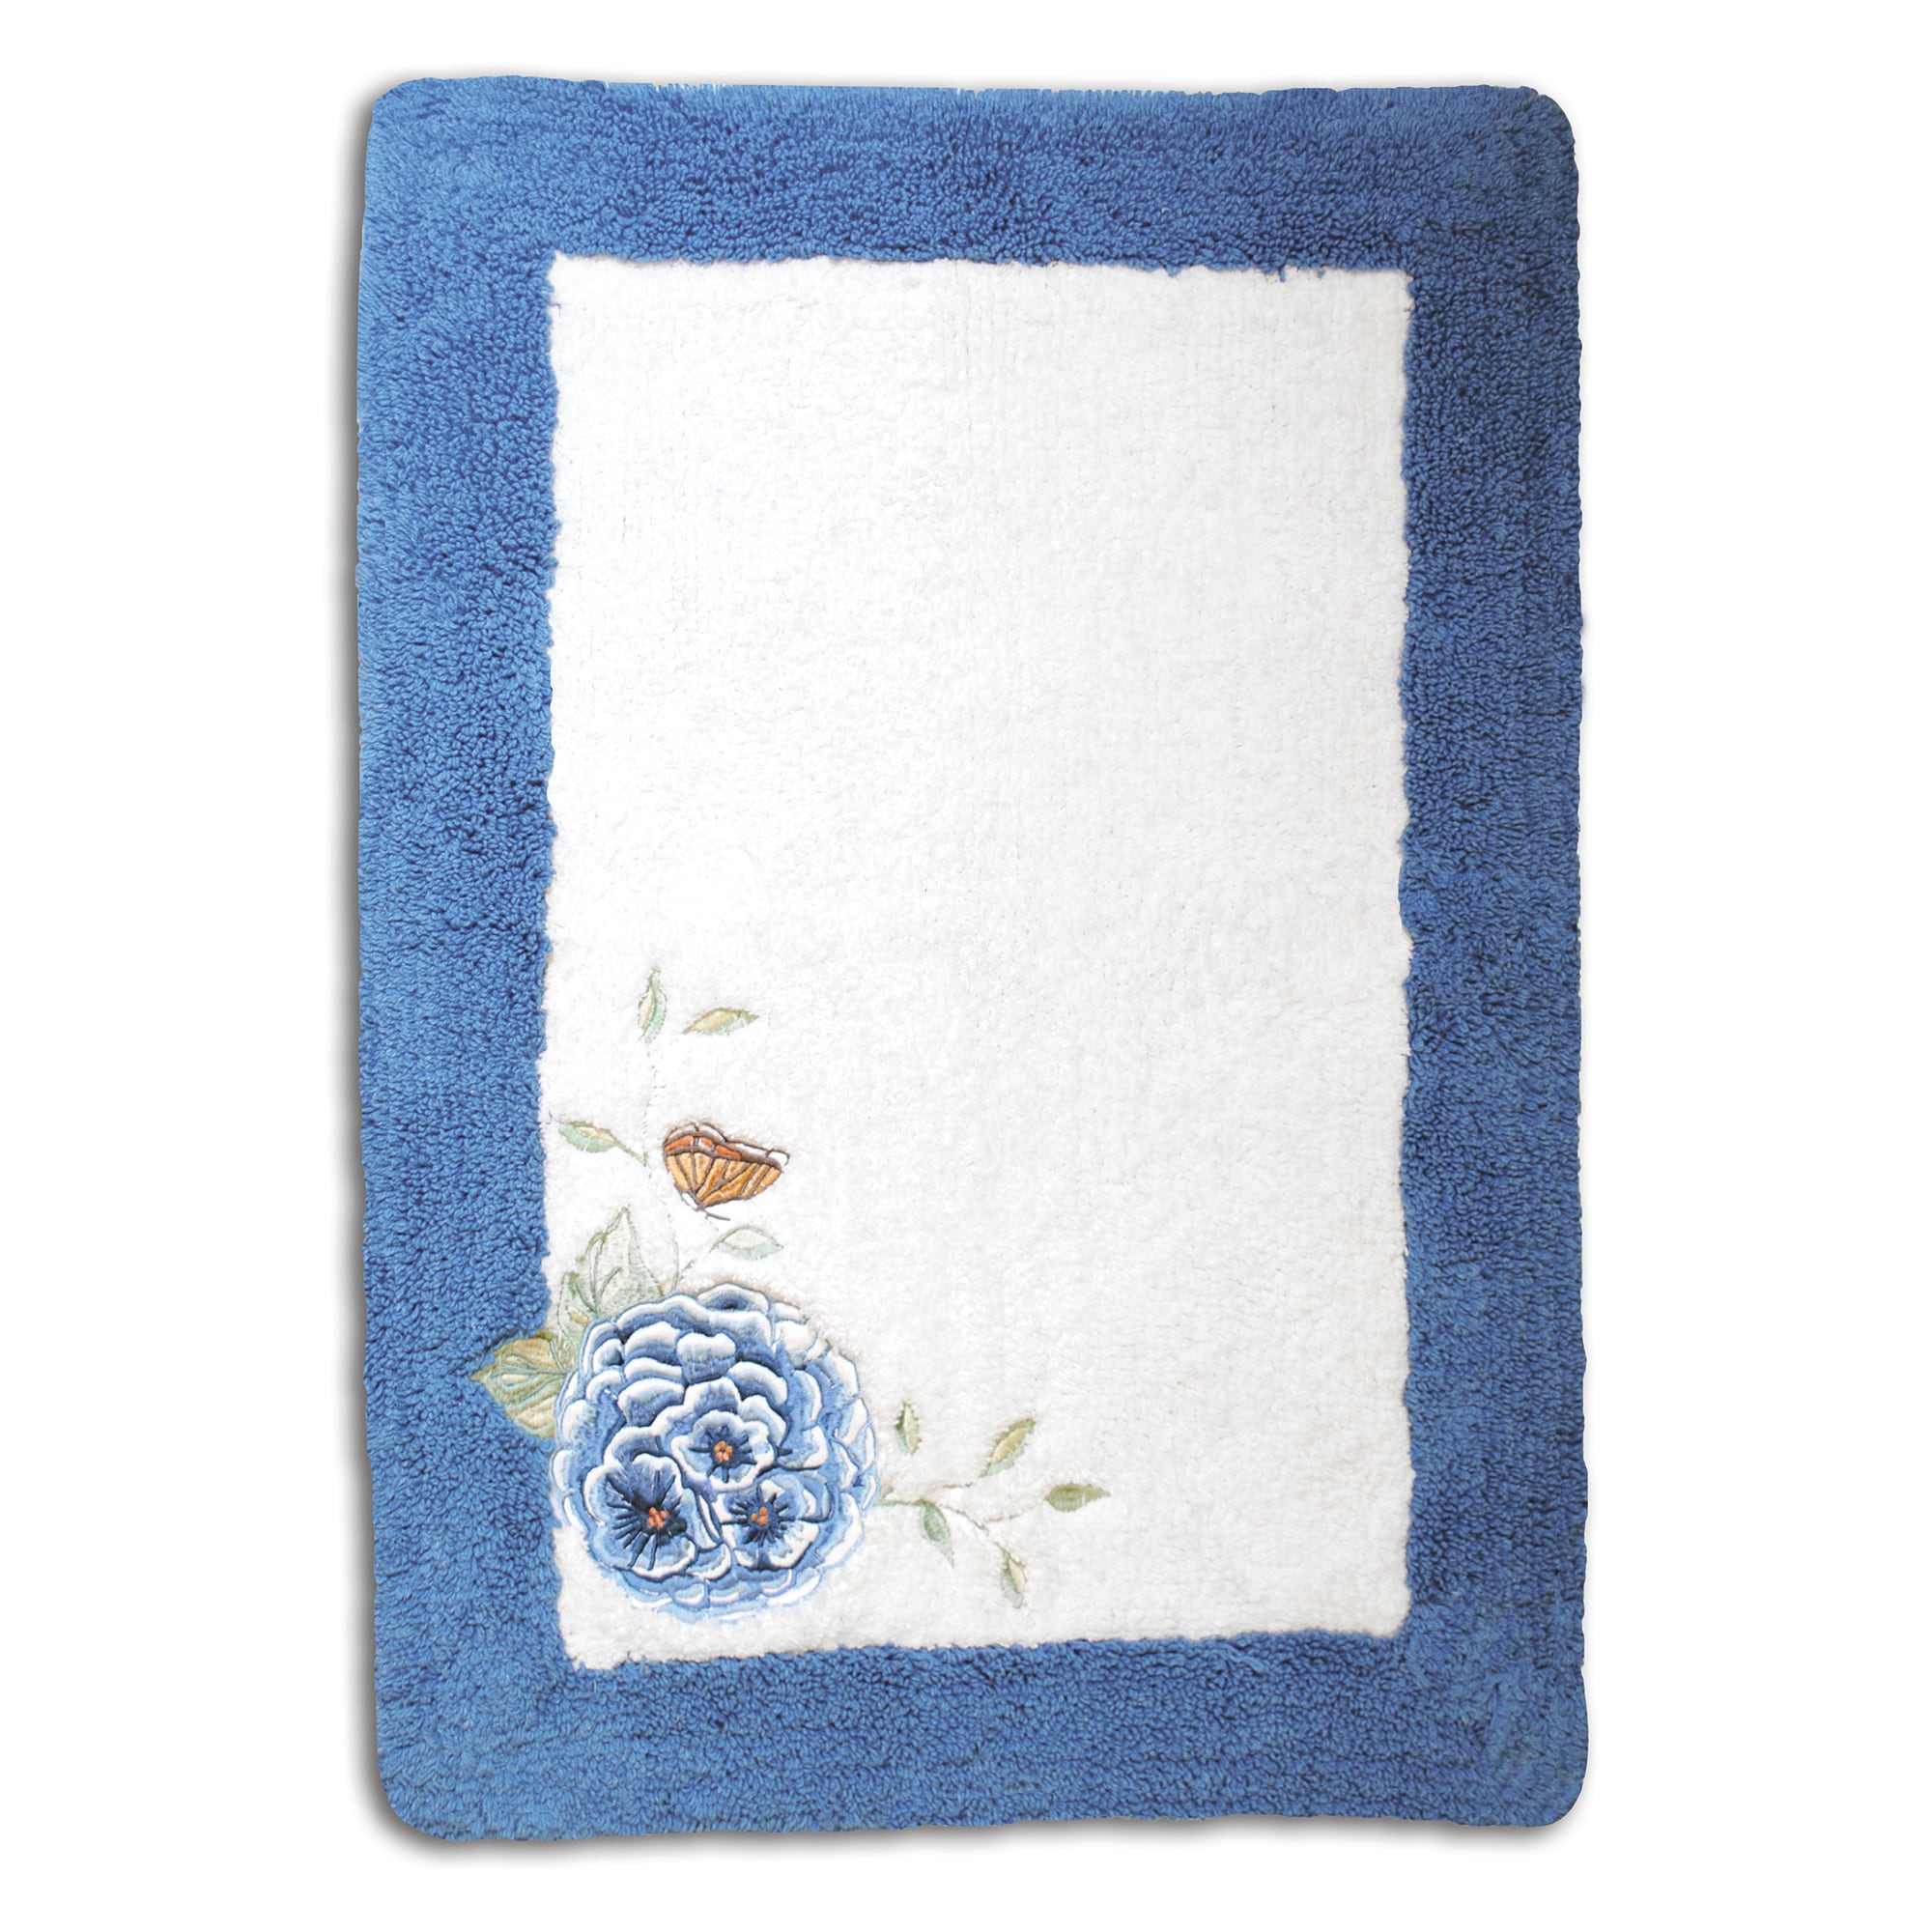 Lenox Erfly Meadow Embroidered